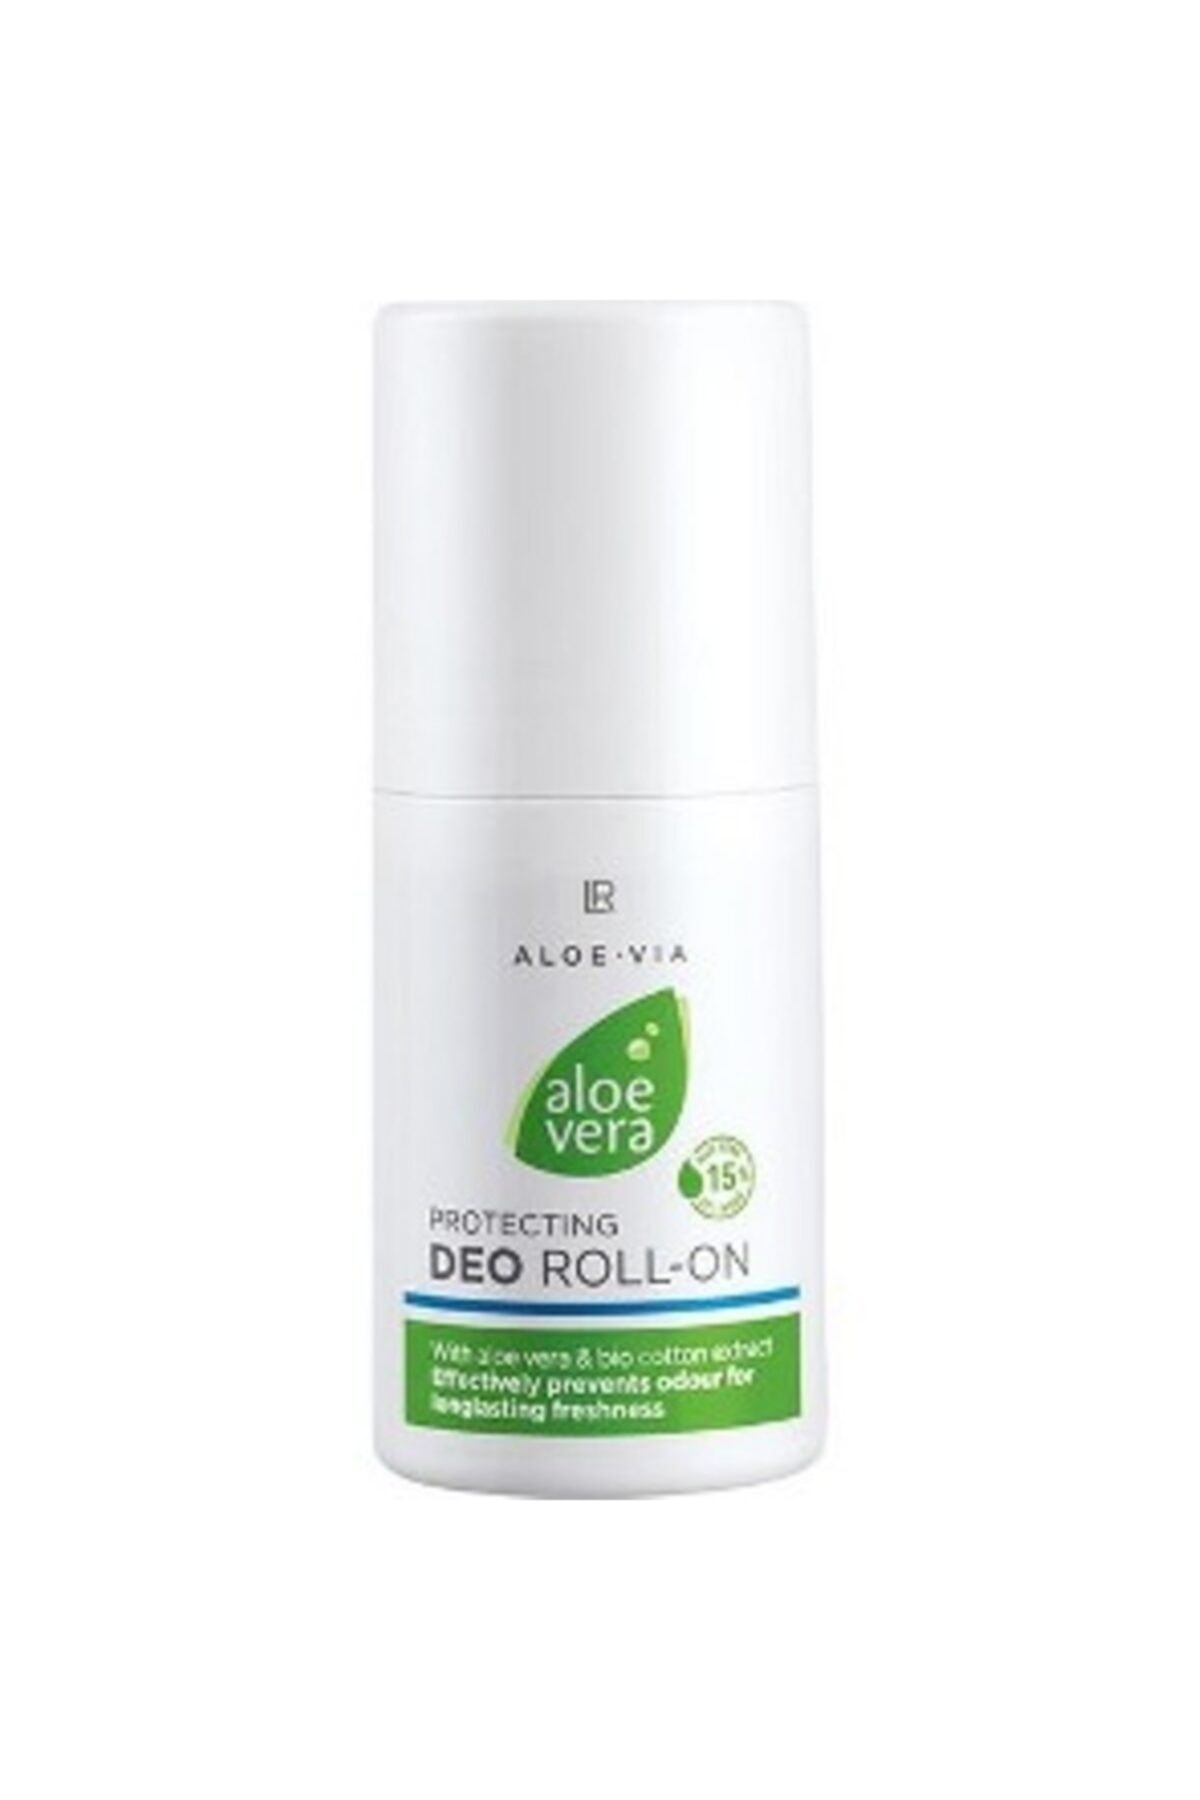 LR Aloe Via Deo Roll-on 50 ml Yeni Üretim 1